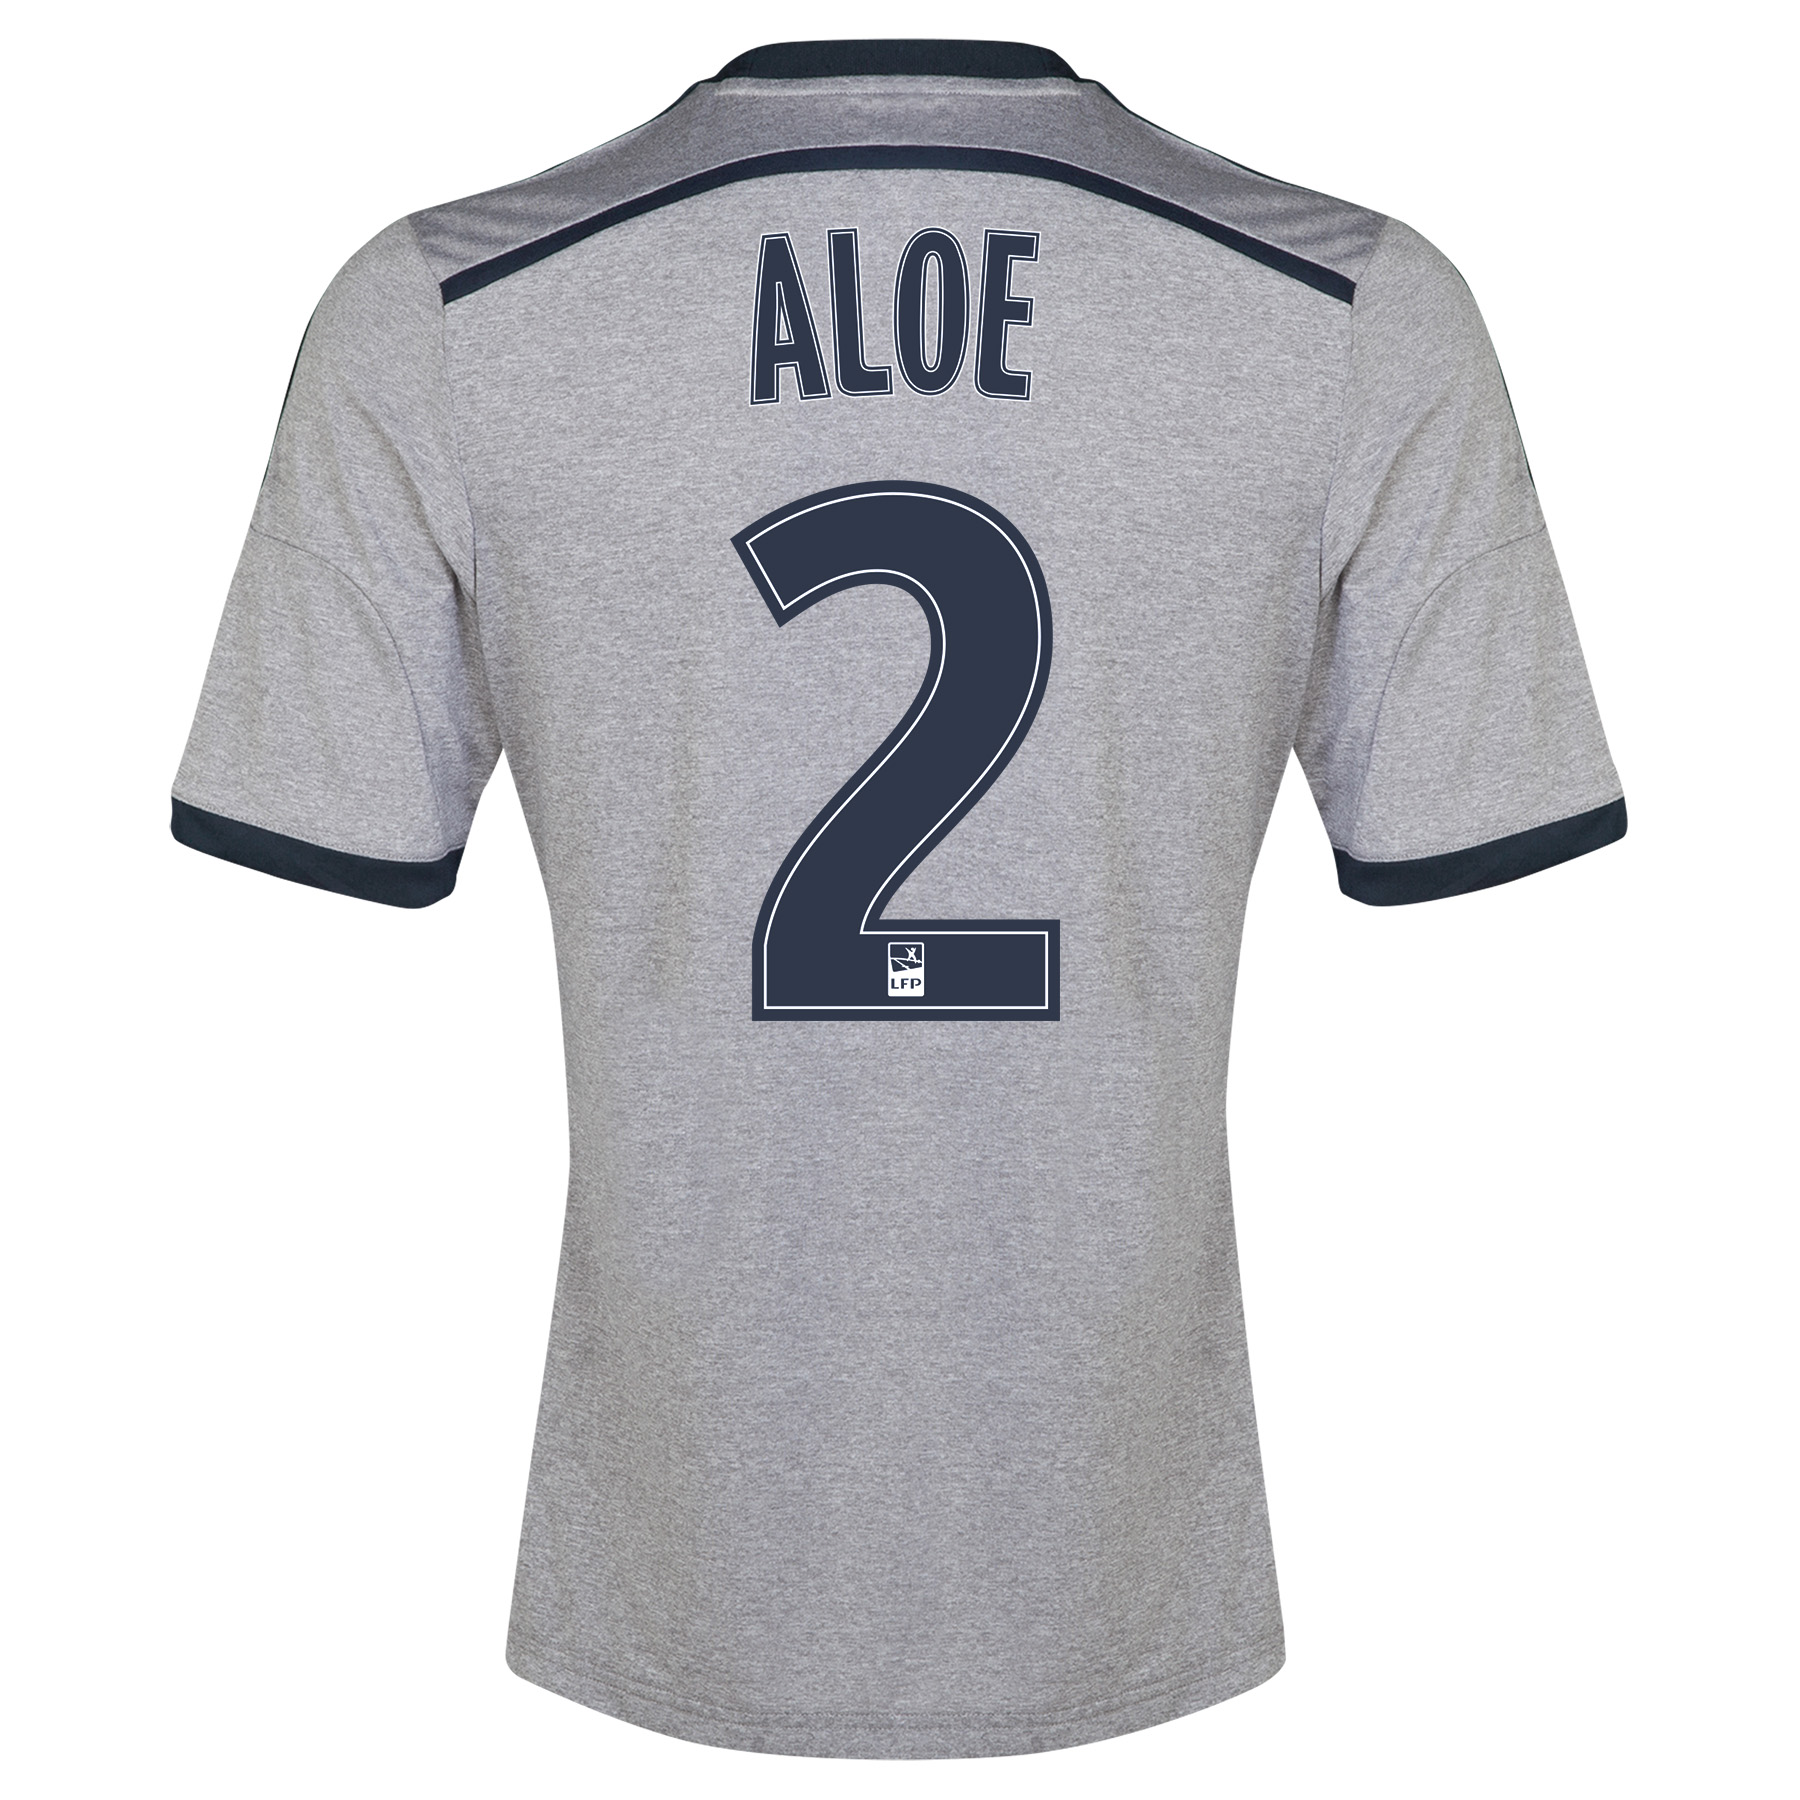 Olympique de Marseille Away Shirt Short Sleeve - Junior 2014/15 Silver with Aloe 2 printing